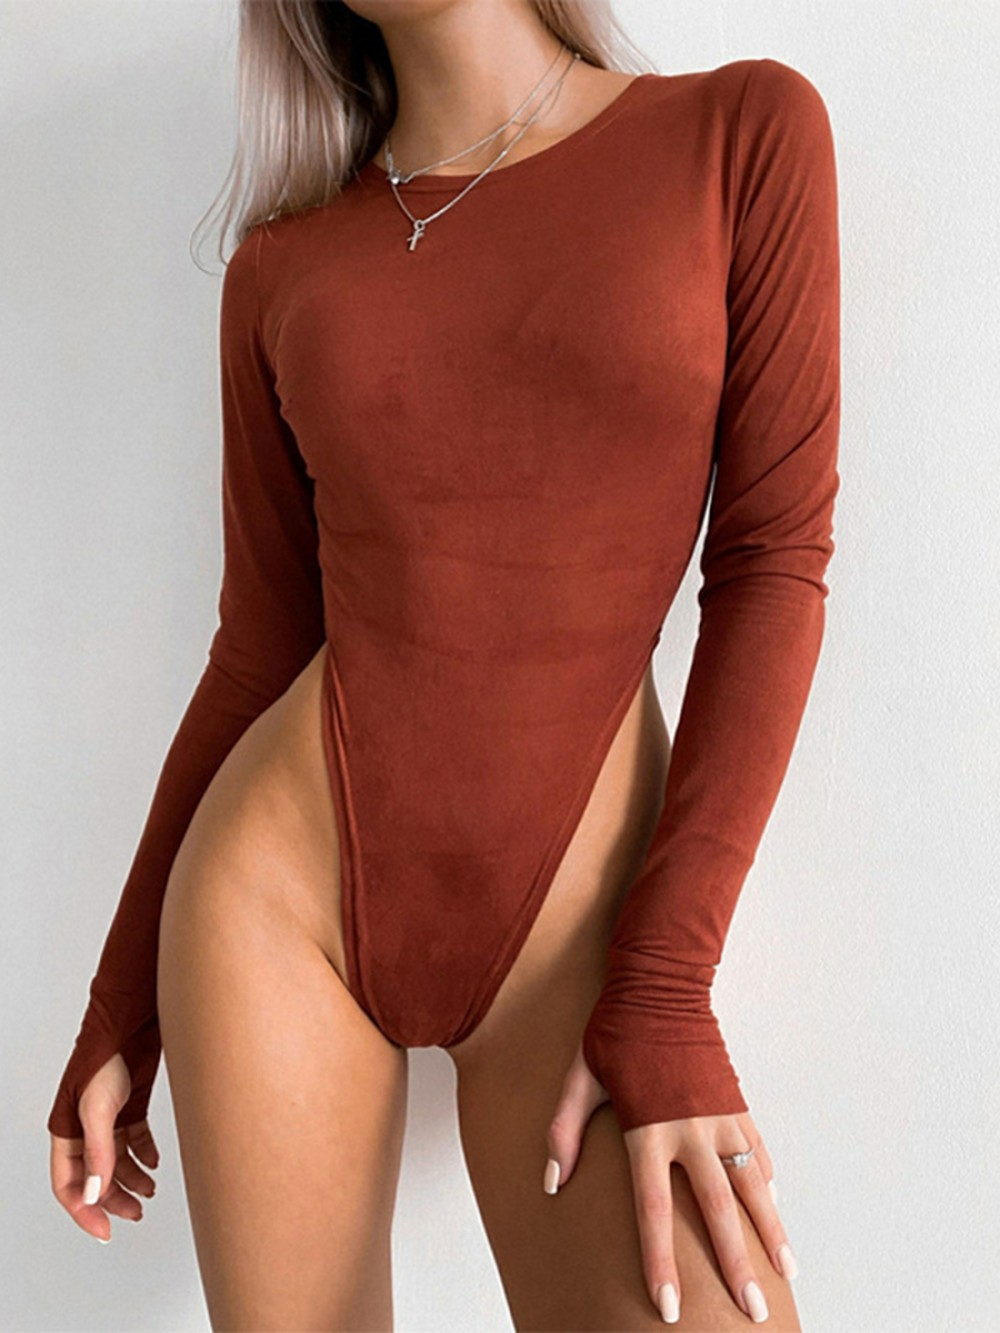 Brown Plain Long Sleeve Bodysuit With Thumbhole Tops For Women